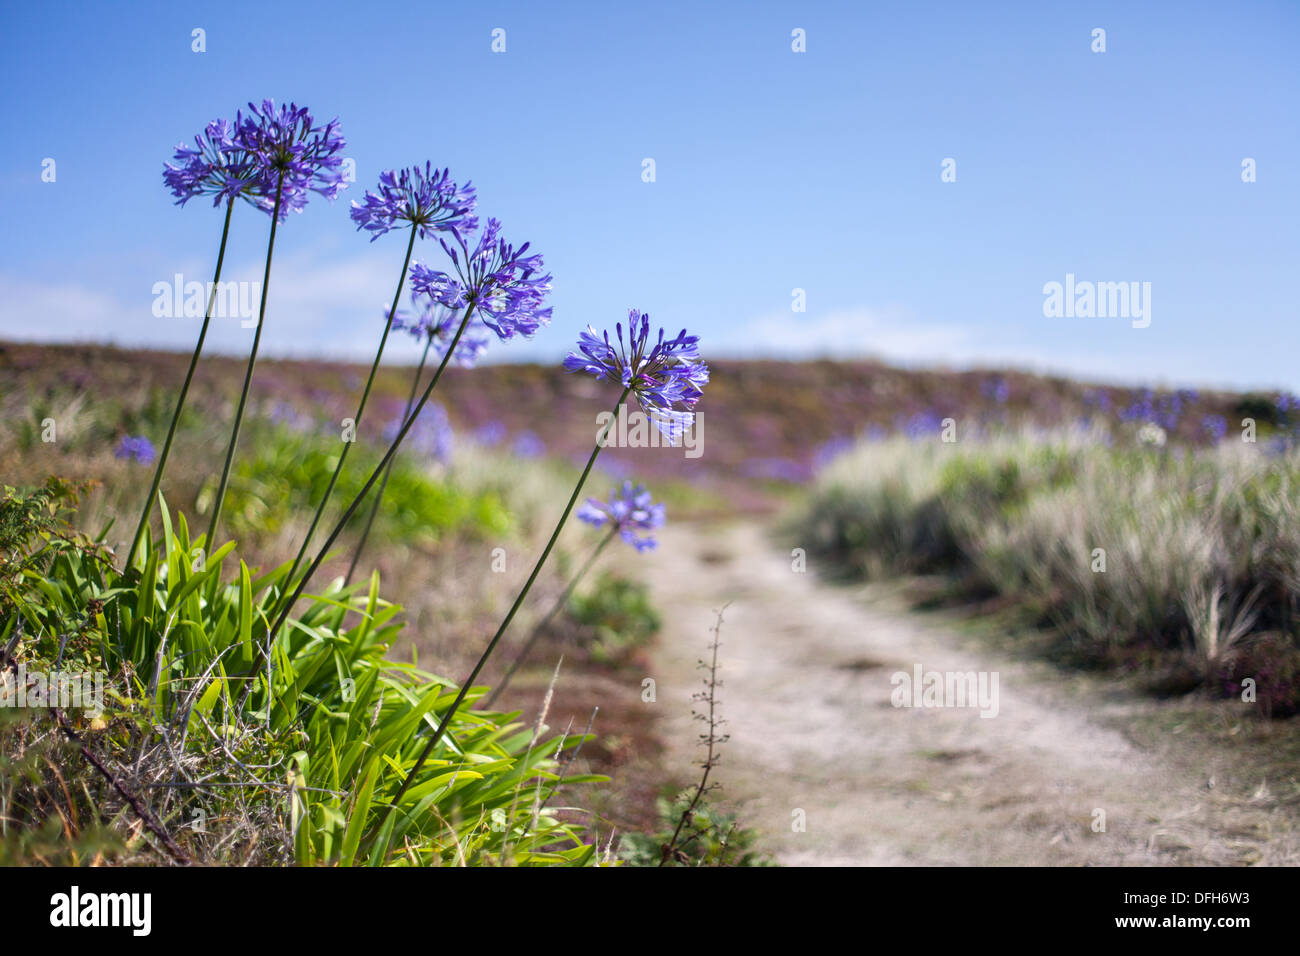 Blue agapanthus flowers at the side of a path leading to the beach, Tresco, Isles of Scilly, UK - Stock Image